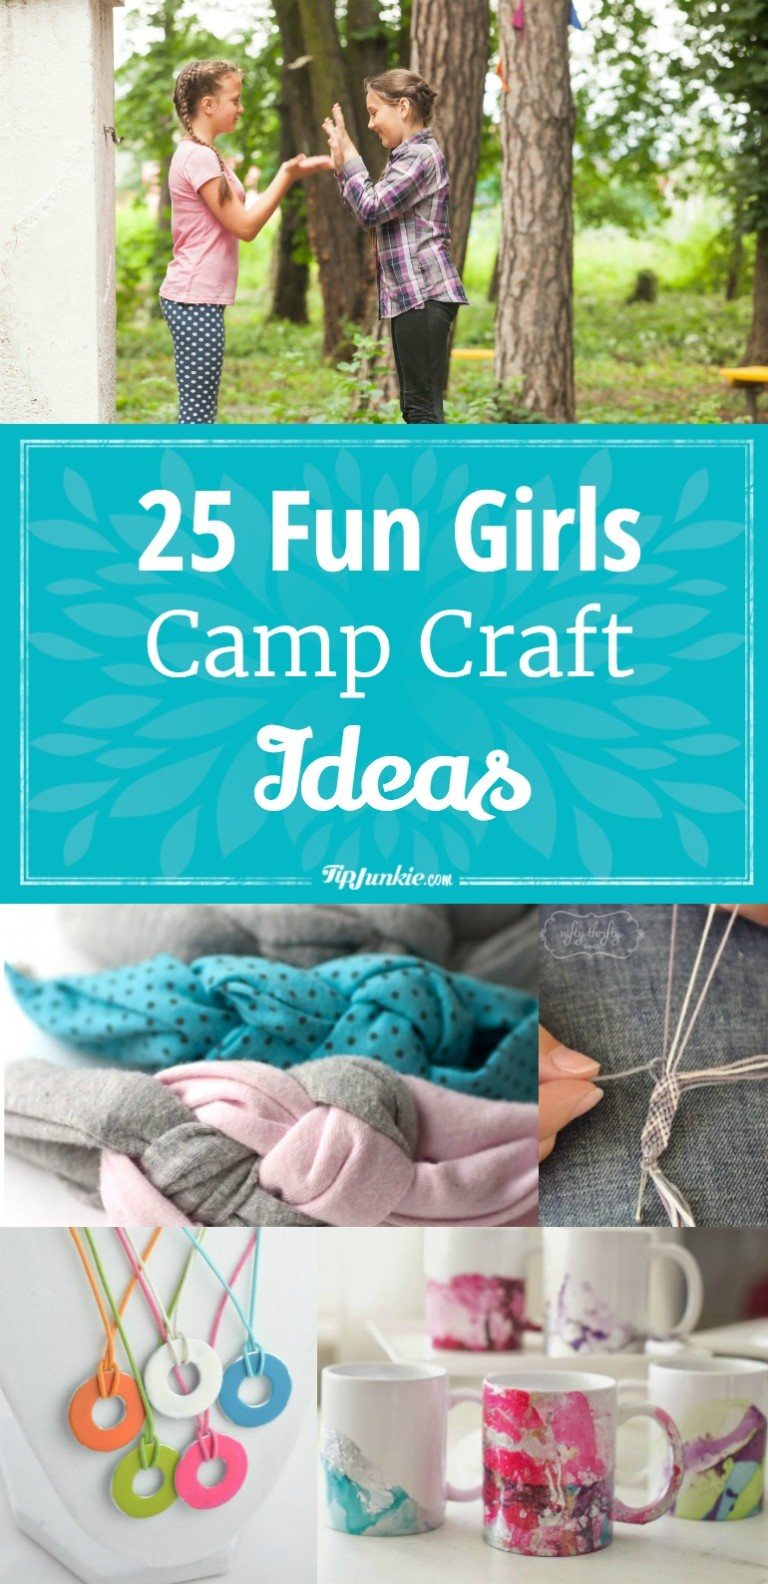 25 Fun Girls Camp Craft Ideas